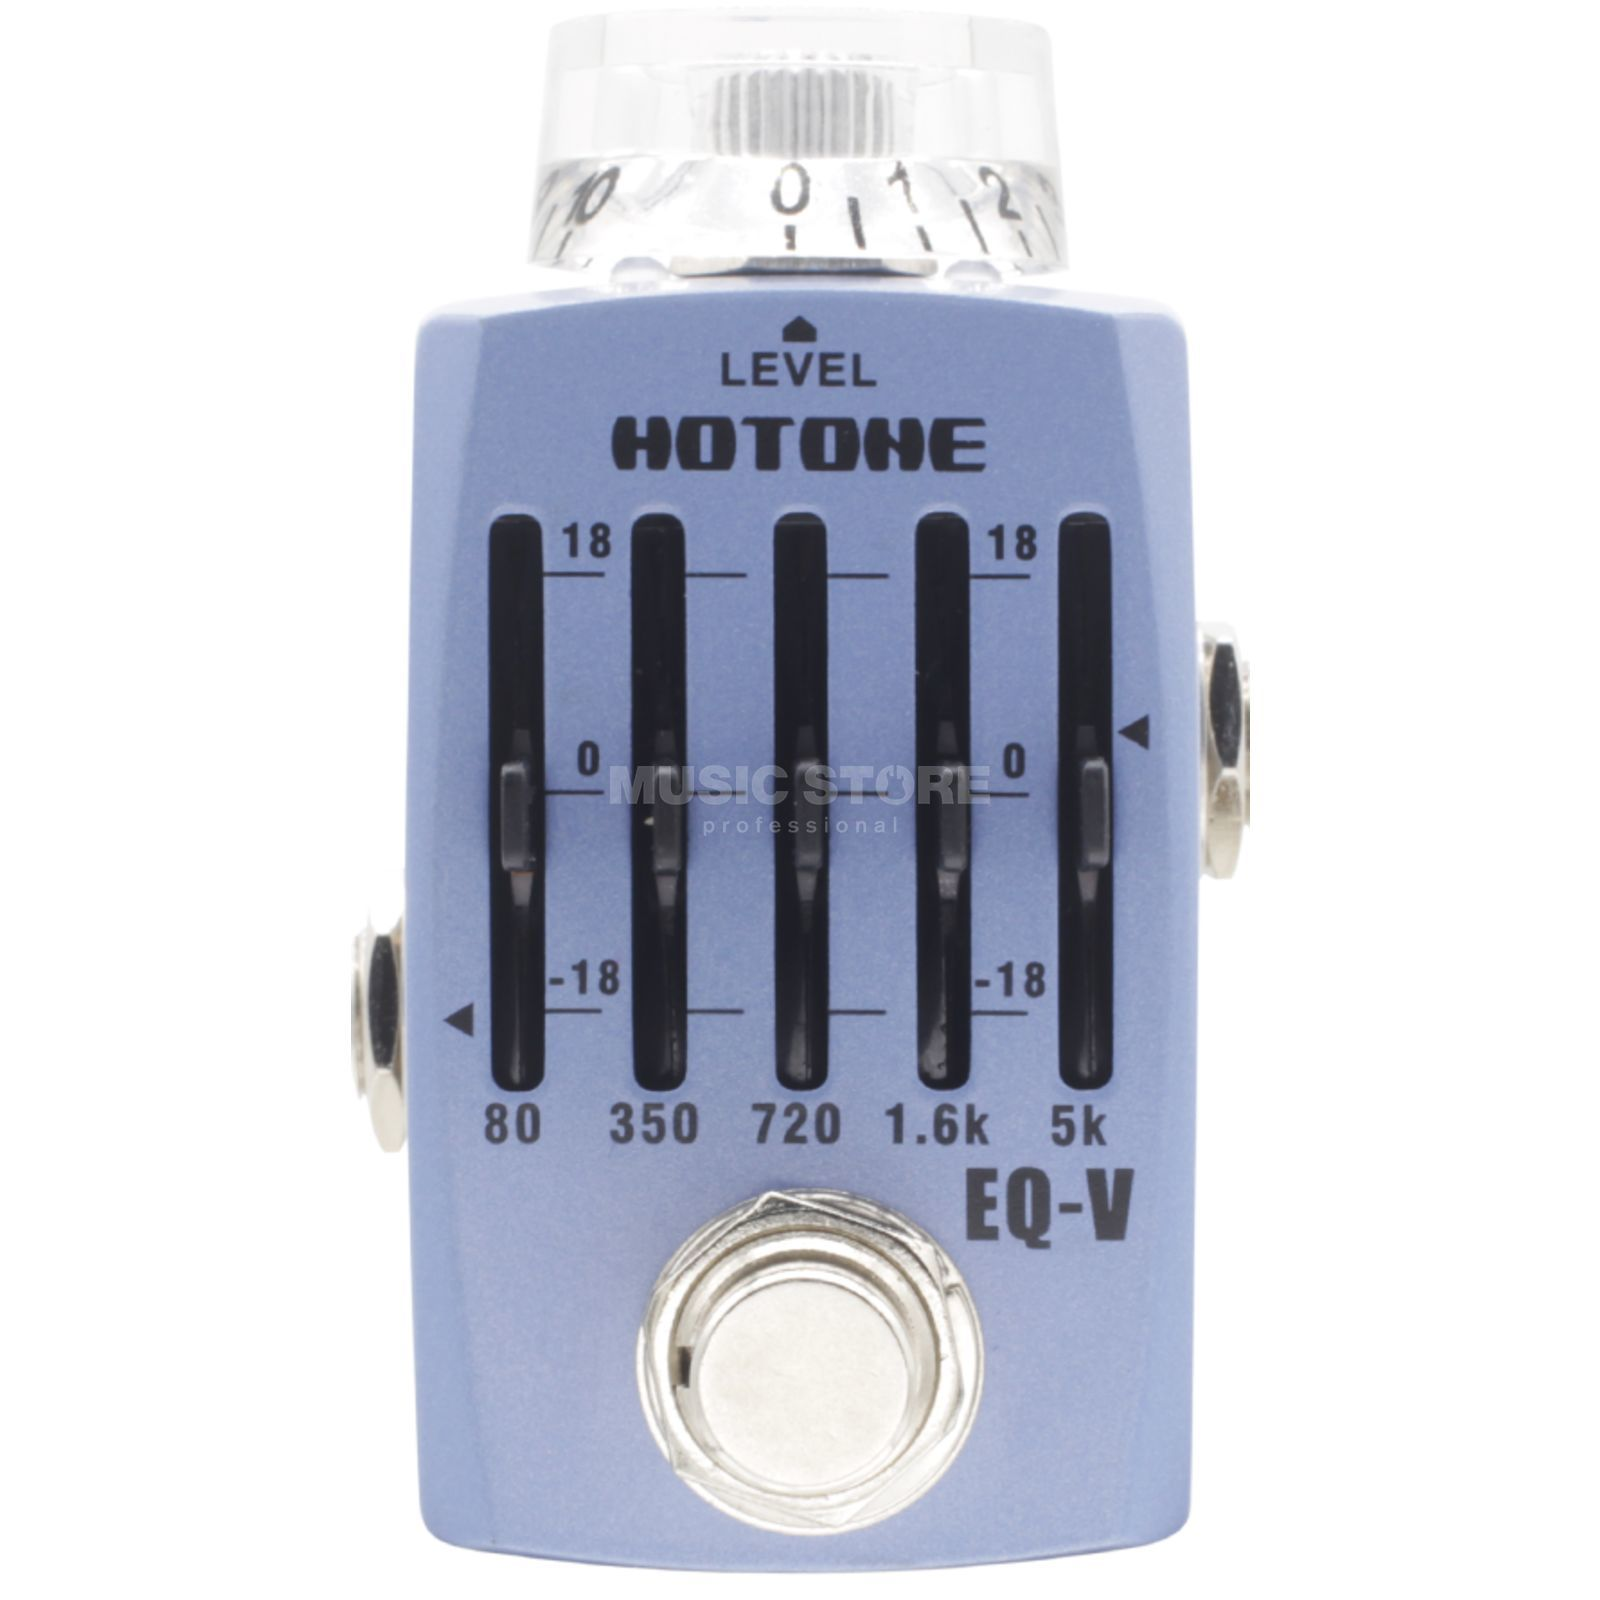 Hotone Skyline EQ-V Graphic Equalizer Produktbild